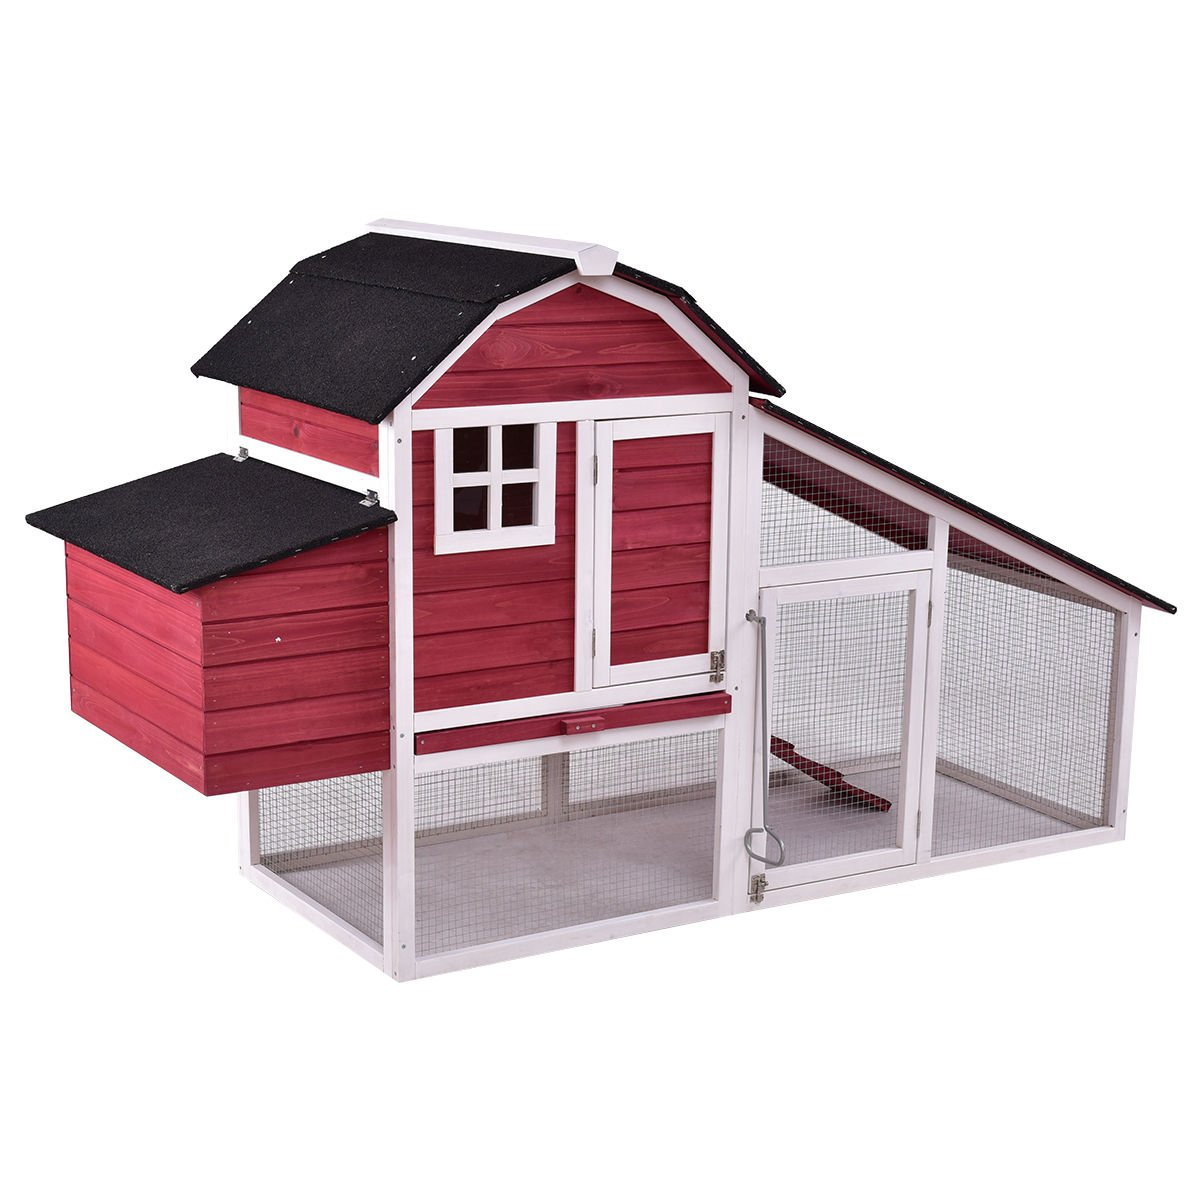 Tangkula Large Chicken Coop Wooden Outdoor Garden Backyard Bunny Rabbit Small Animal Hen Cage Rabbit Hutch with Run Nest (Size 76'')